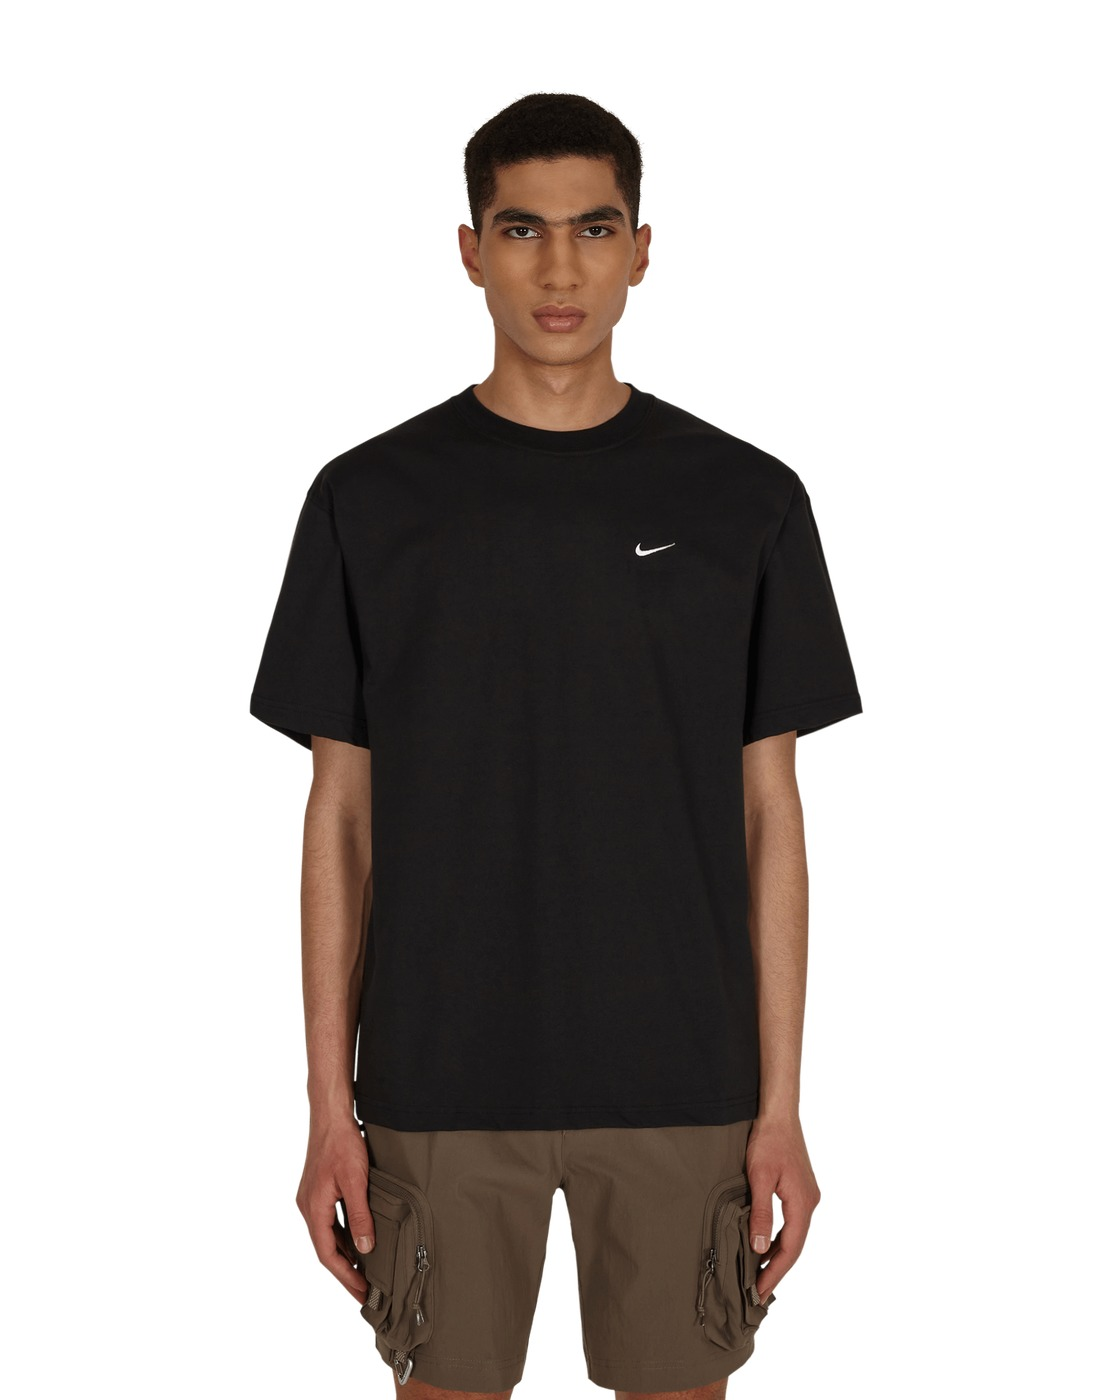 Photo: Nike Special Project Made In The Usa T Shirt Black/White